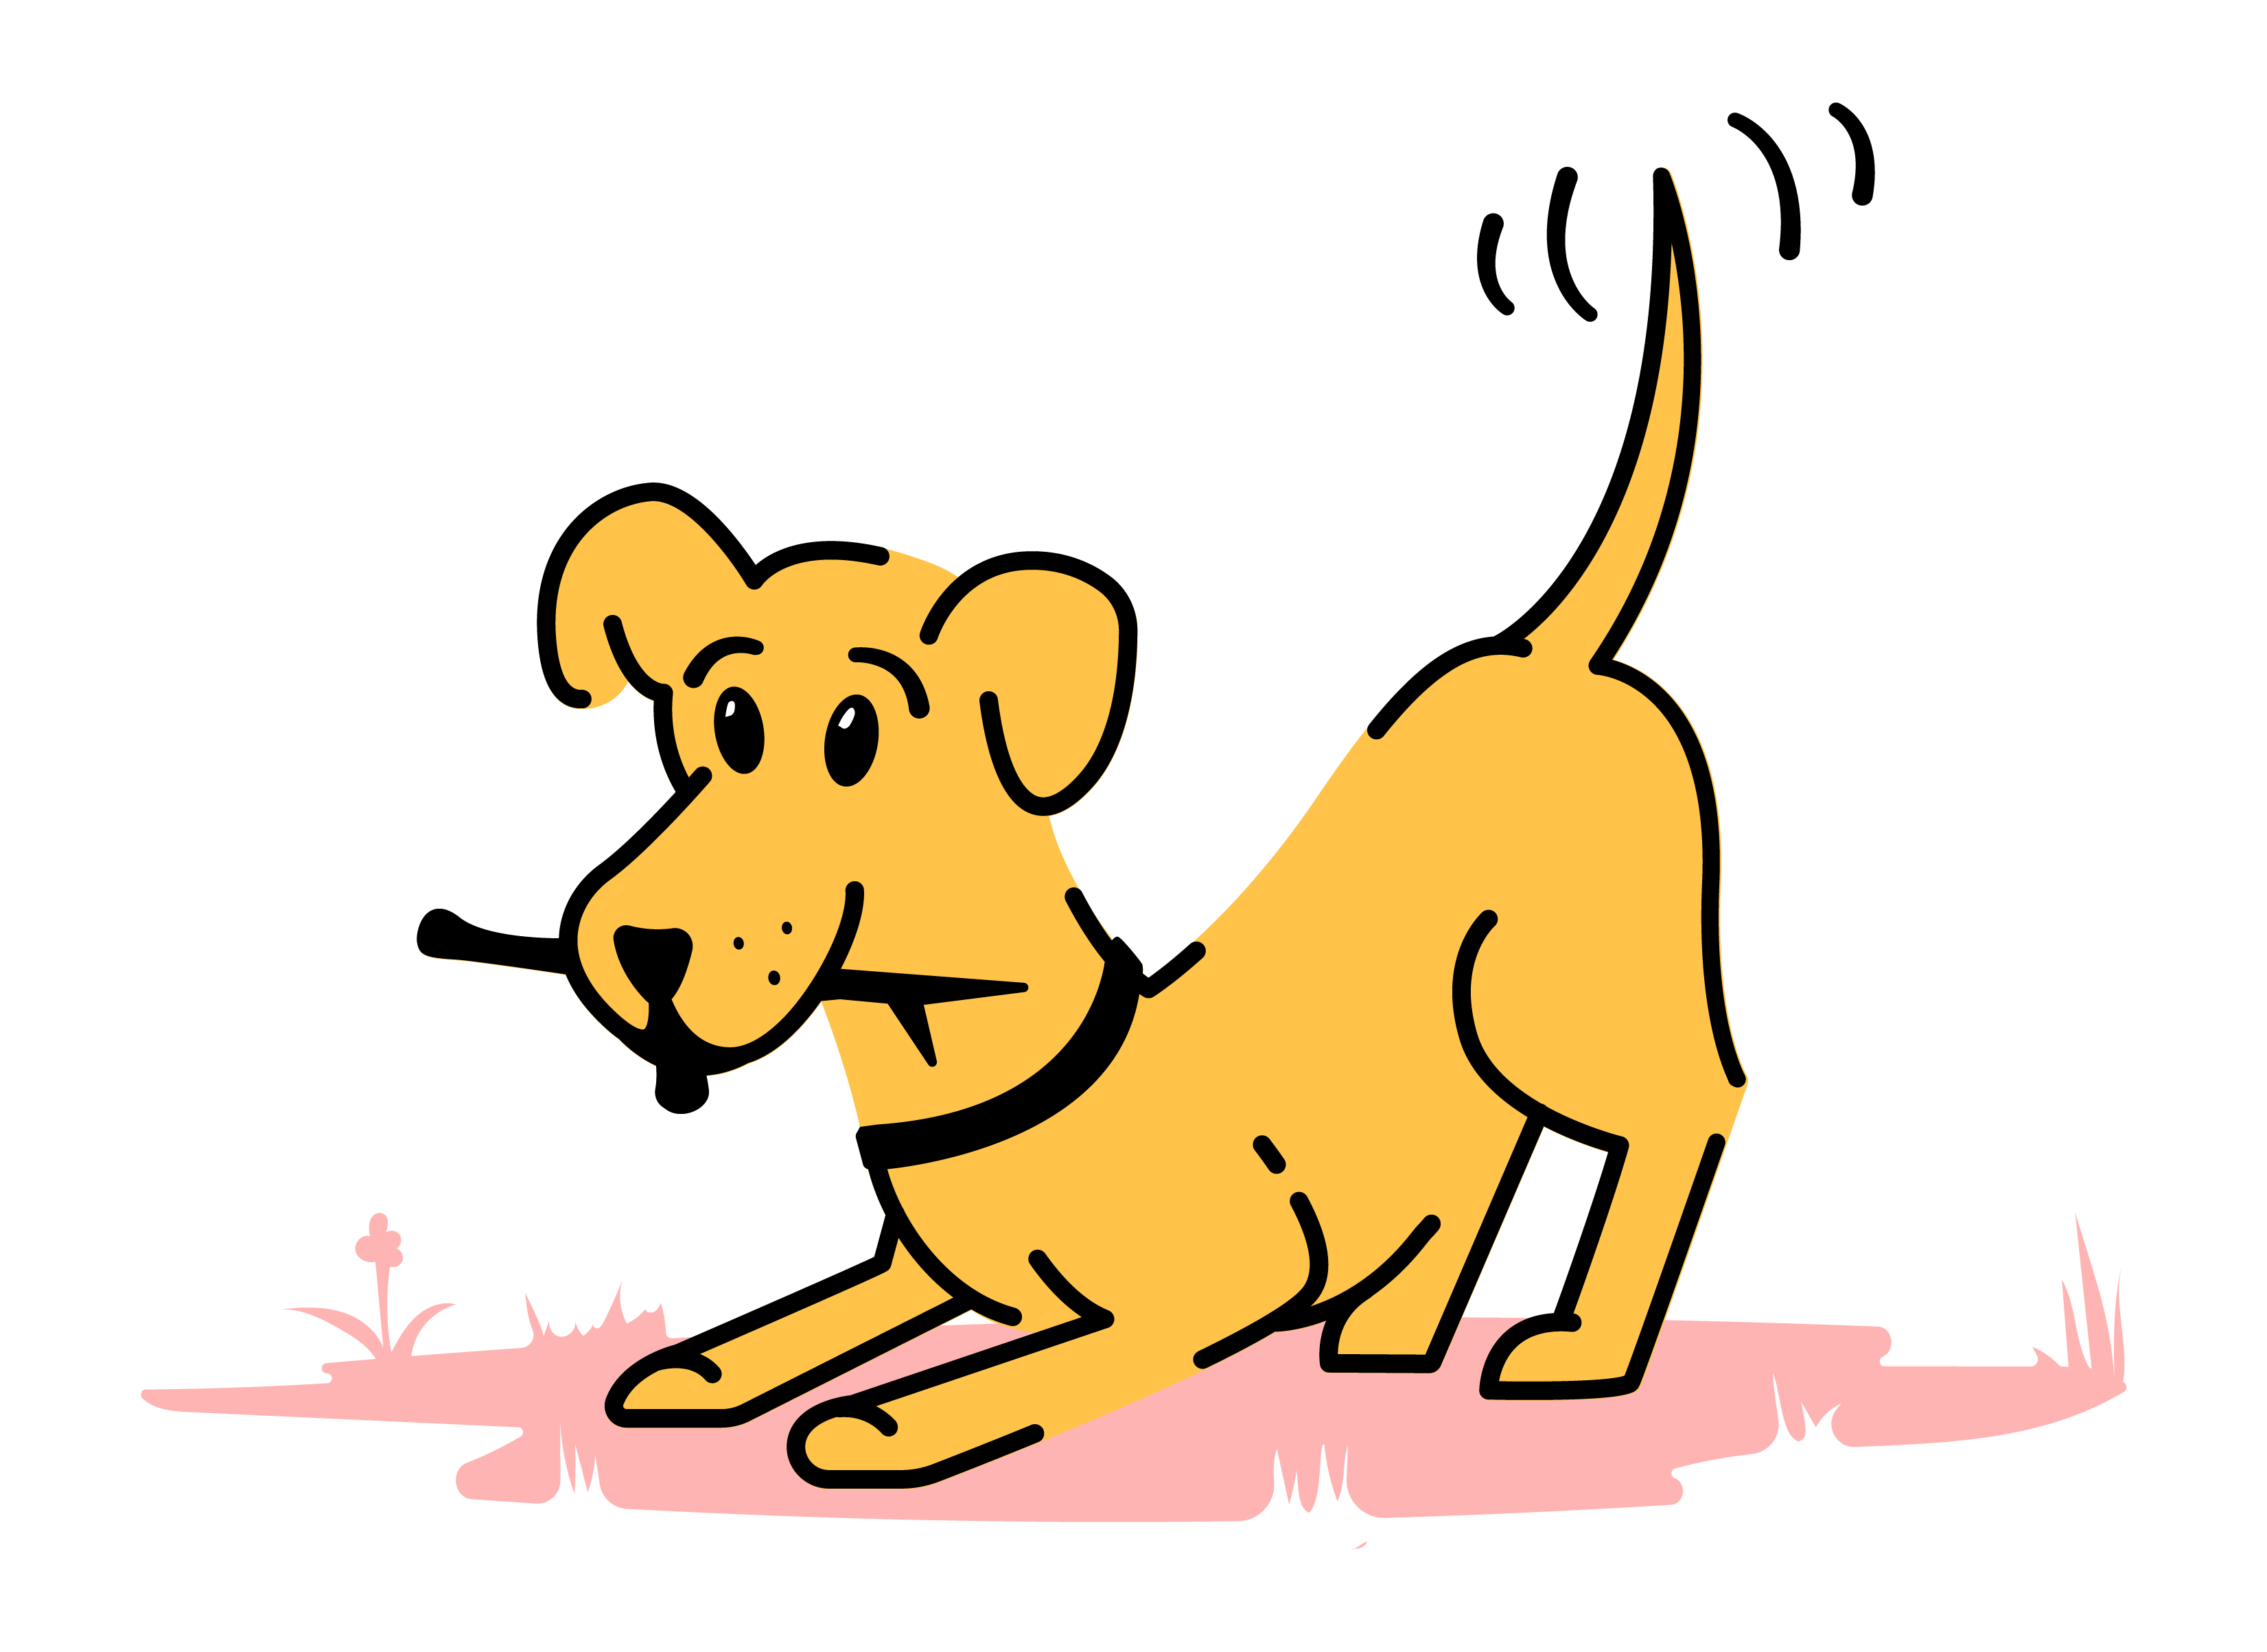 Dog wagging his tail with stick in mouth. illustration